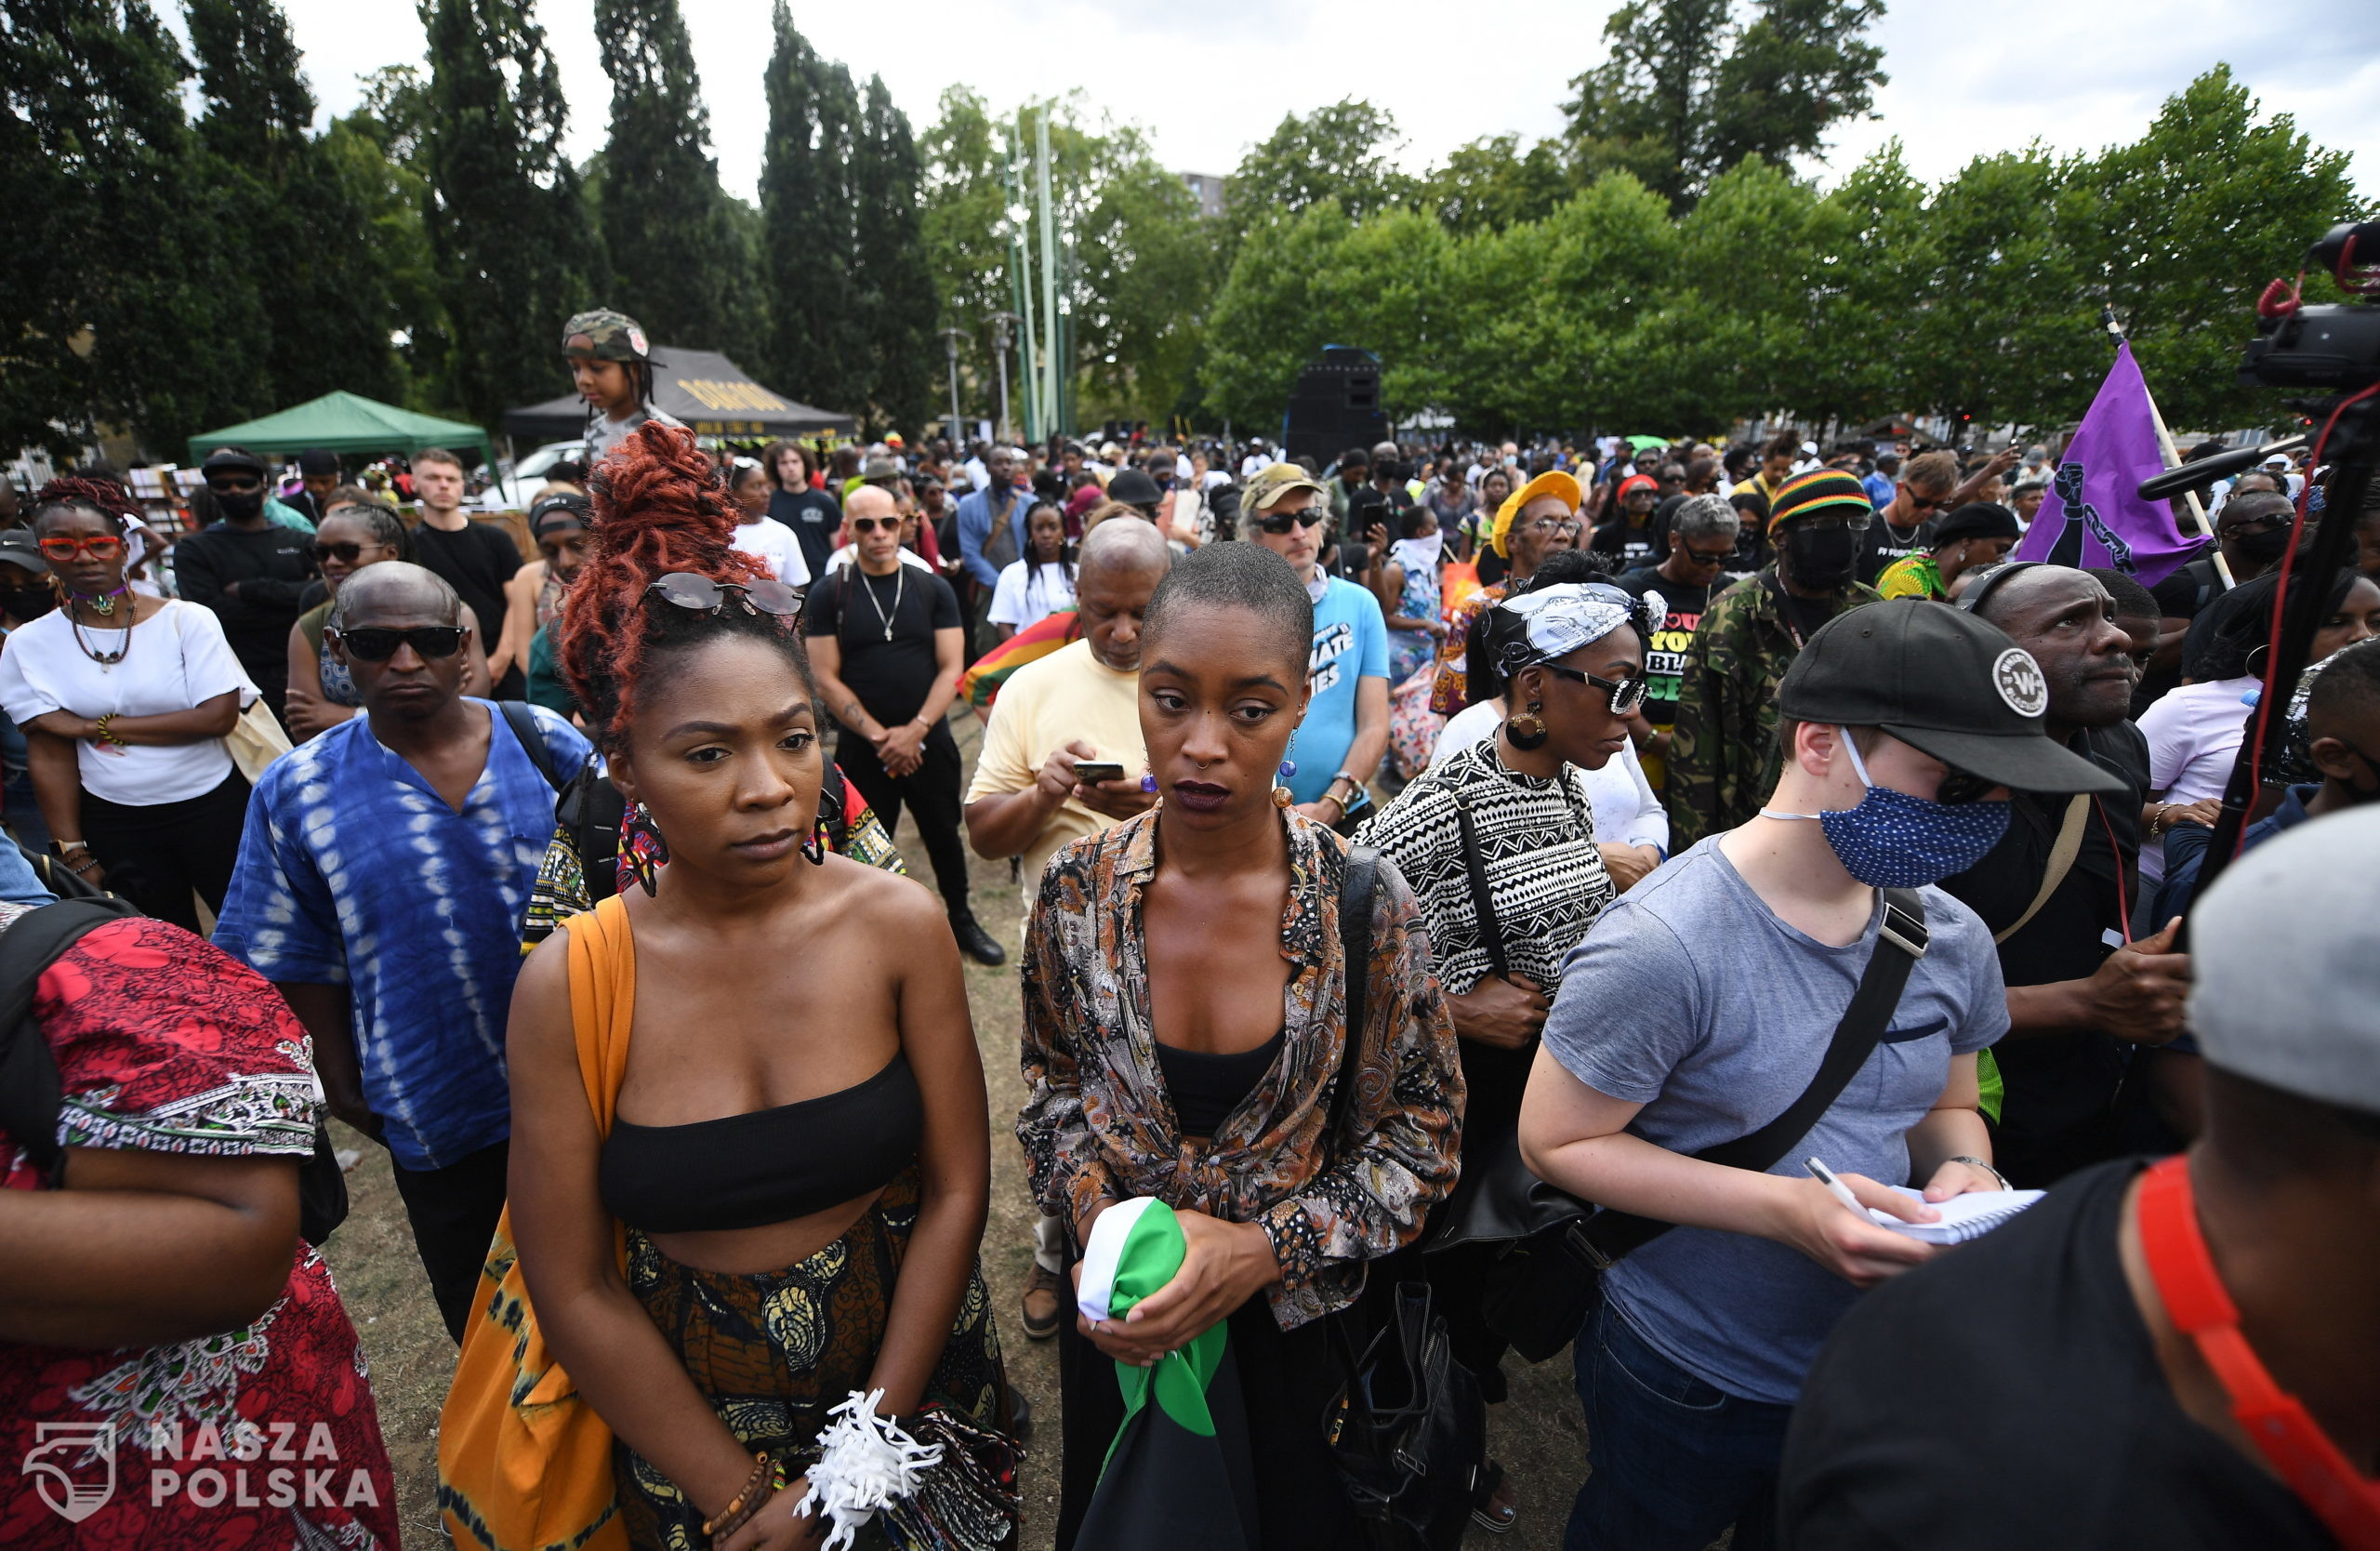 epa08579060 People gather for three minutes of silence at a Black Lives Matter protest in Brixton, London, Britain, 01 August 2020. Thousands of people from across London gathered to mark the annual Emancipation Day.  EPA/ANDY RAIN  Dostawca: PAP/EPA.